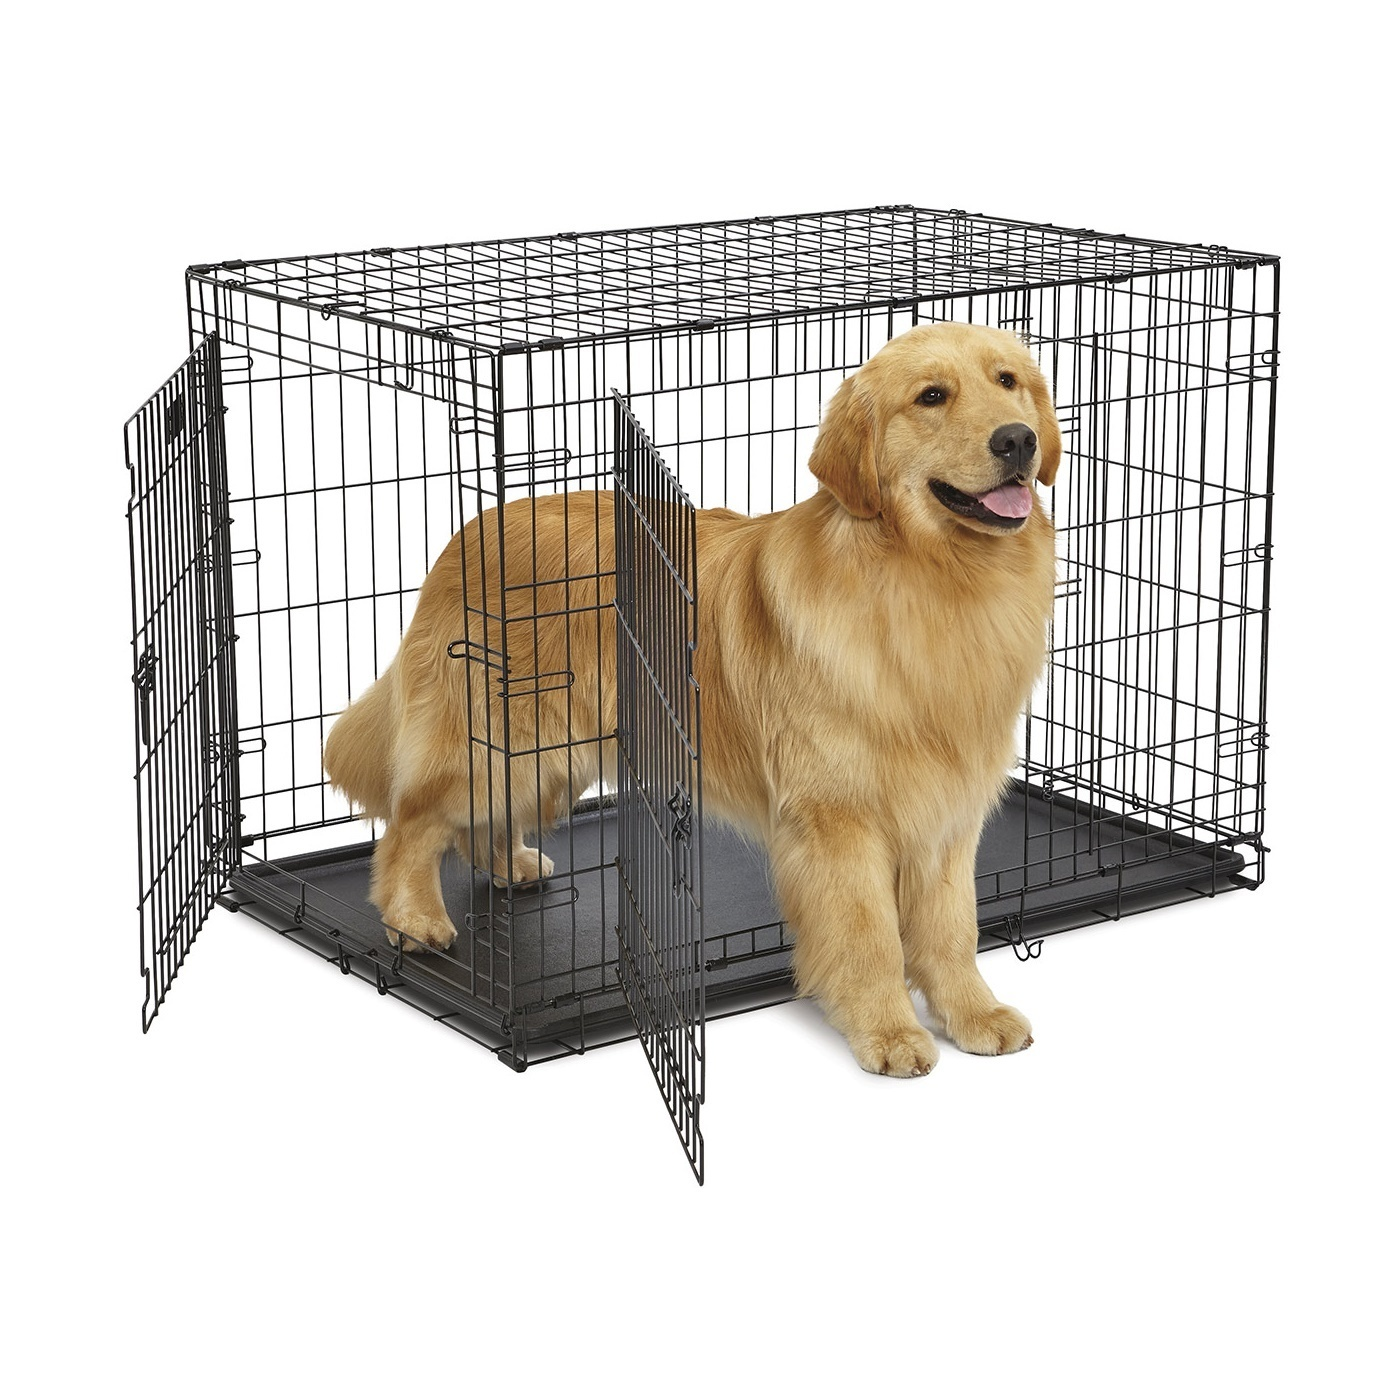 Lifestages Double Door Dog Crate With Divider